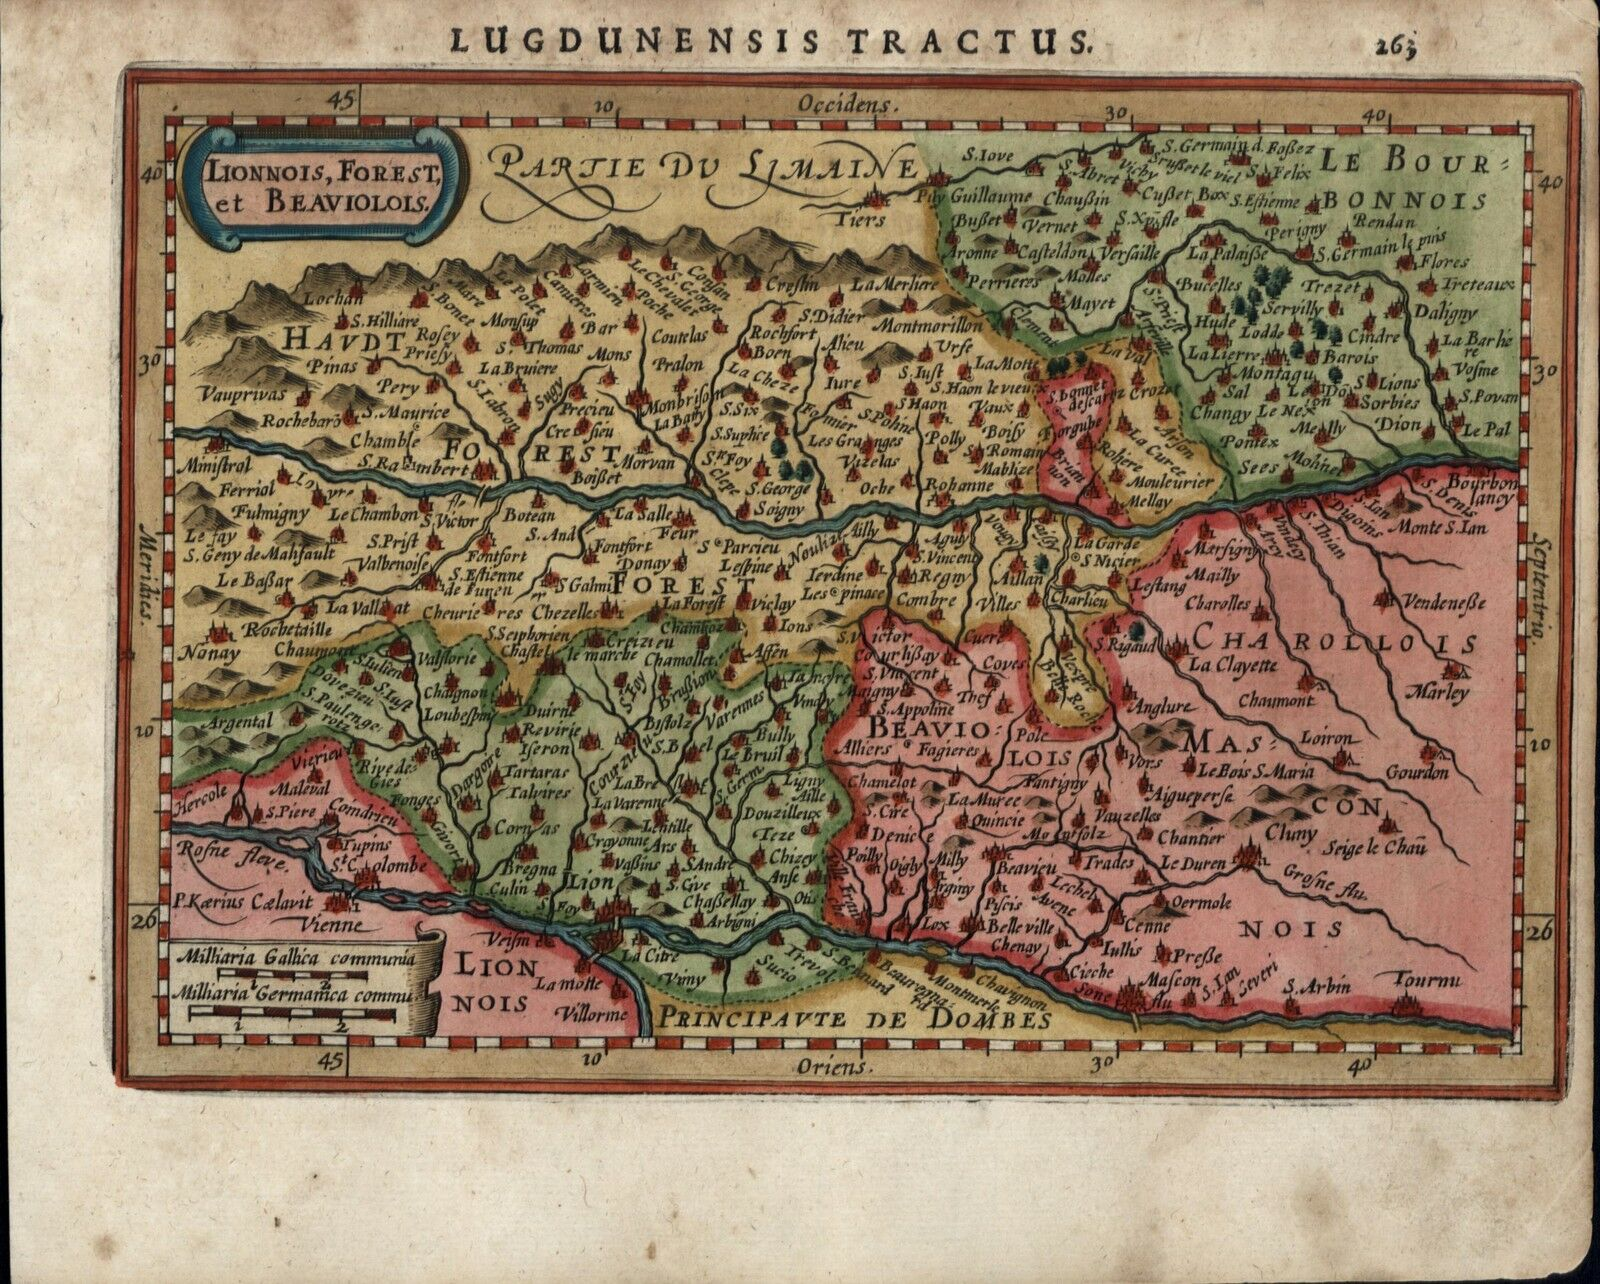 Map Of France Cities And Towns.Lyon Lionnois Forest France Cities Towns C 1628 Mercator Minor Old